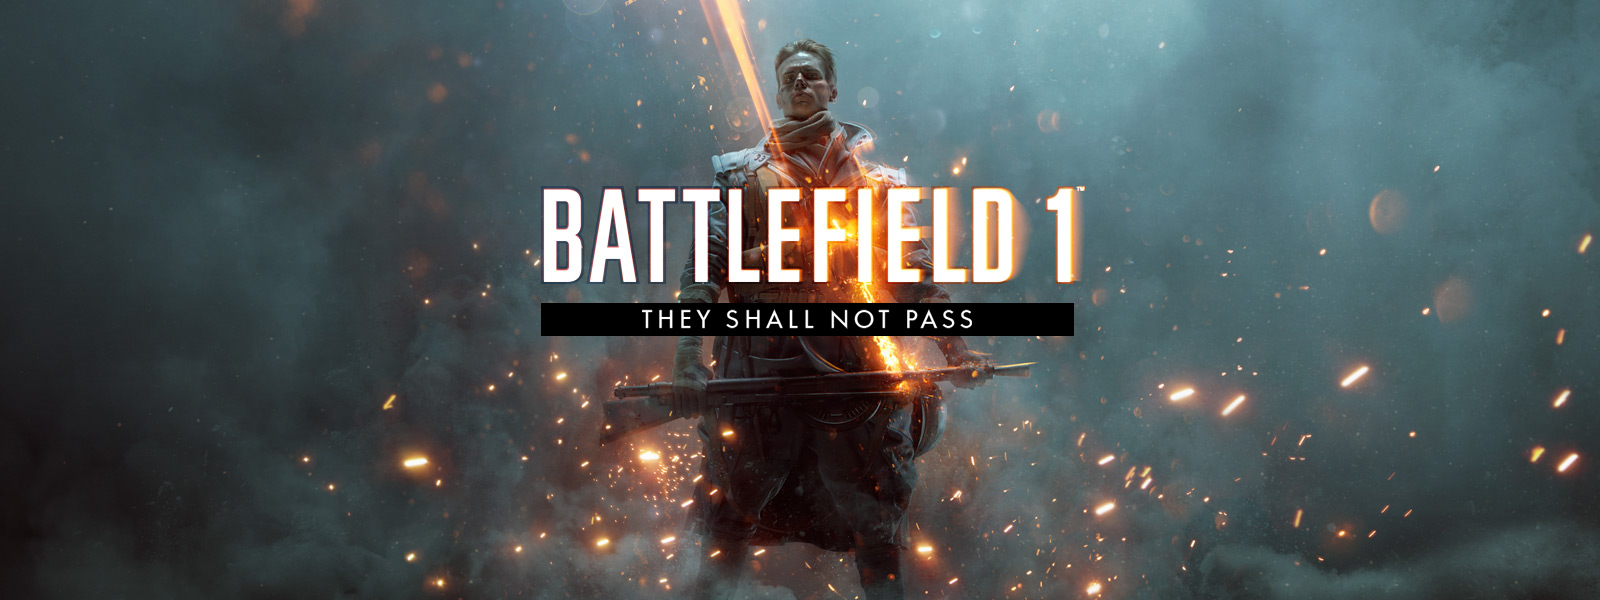 Battlefield 1 DLC – They shall not Pass